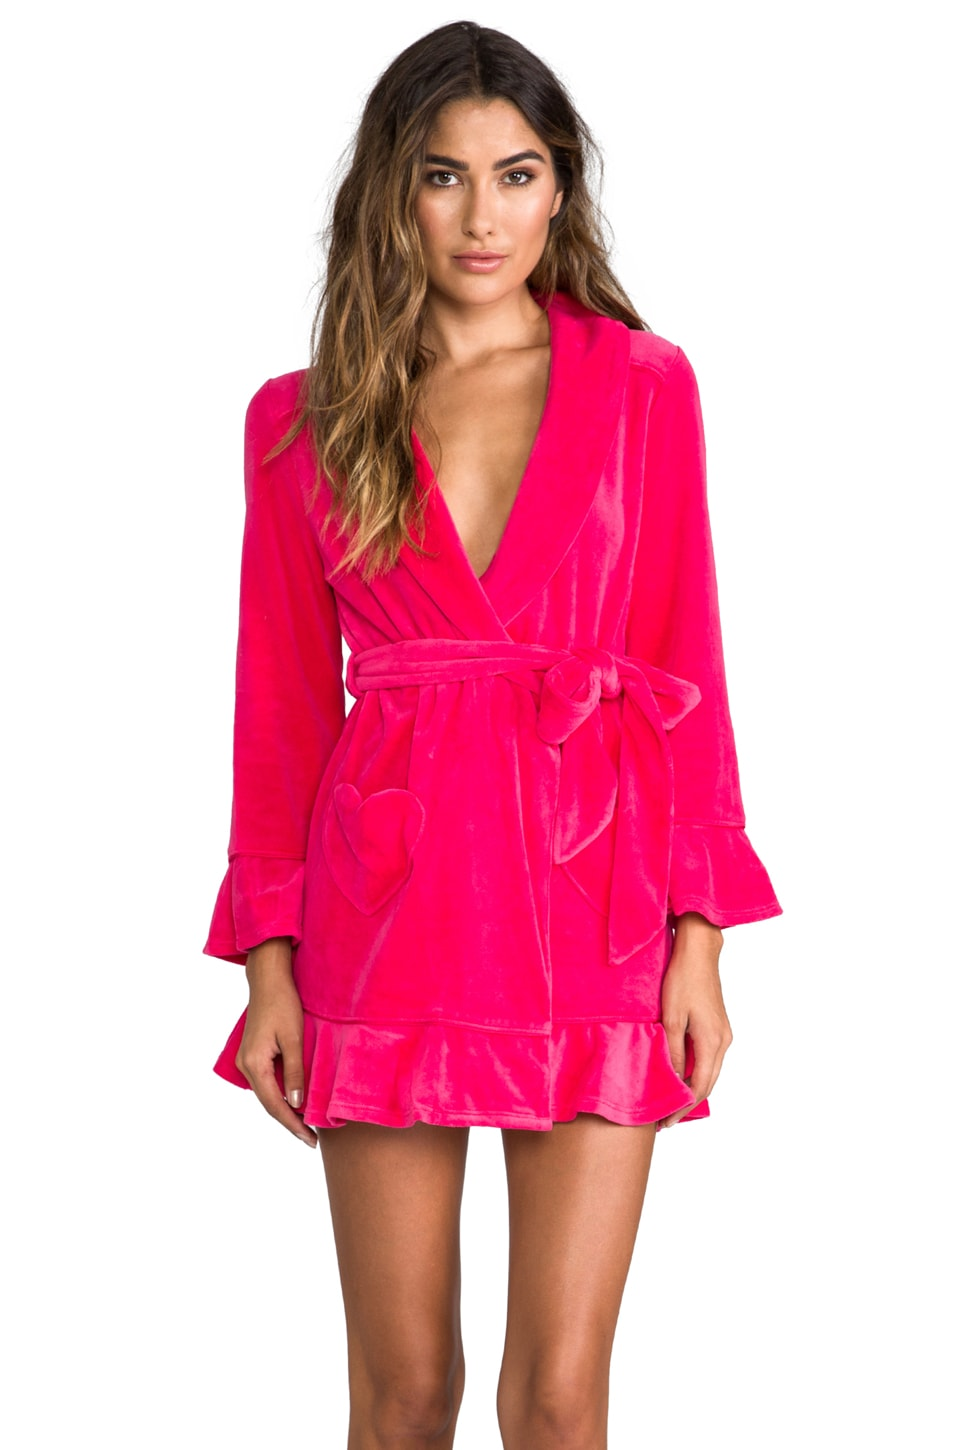 Juicy Couture Velour Robe in Hot Cyclamen